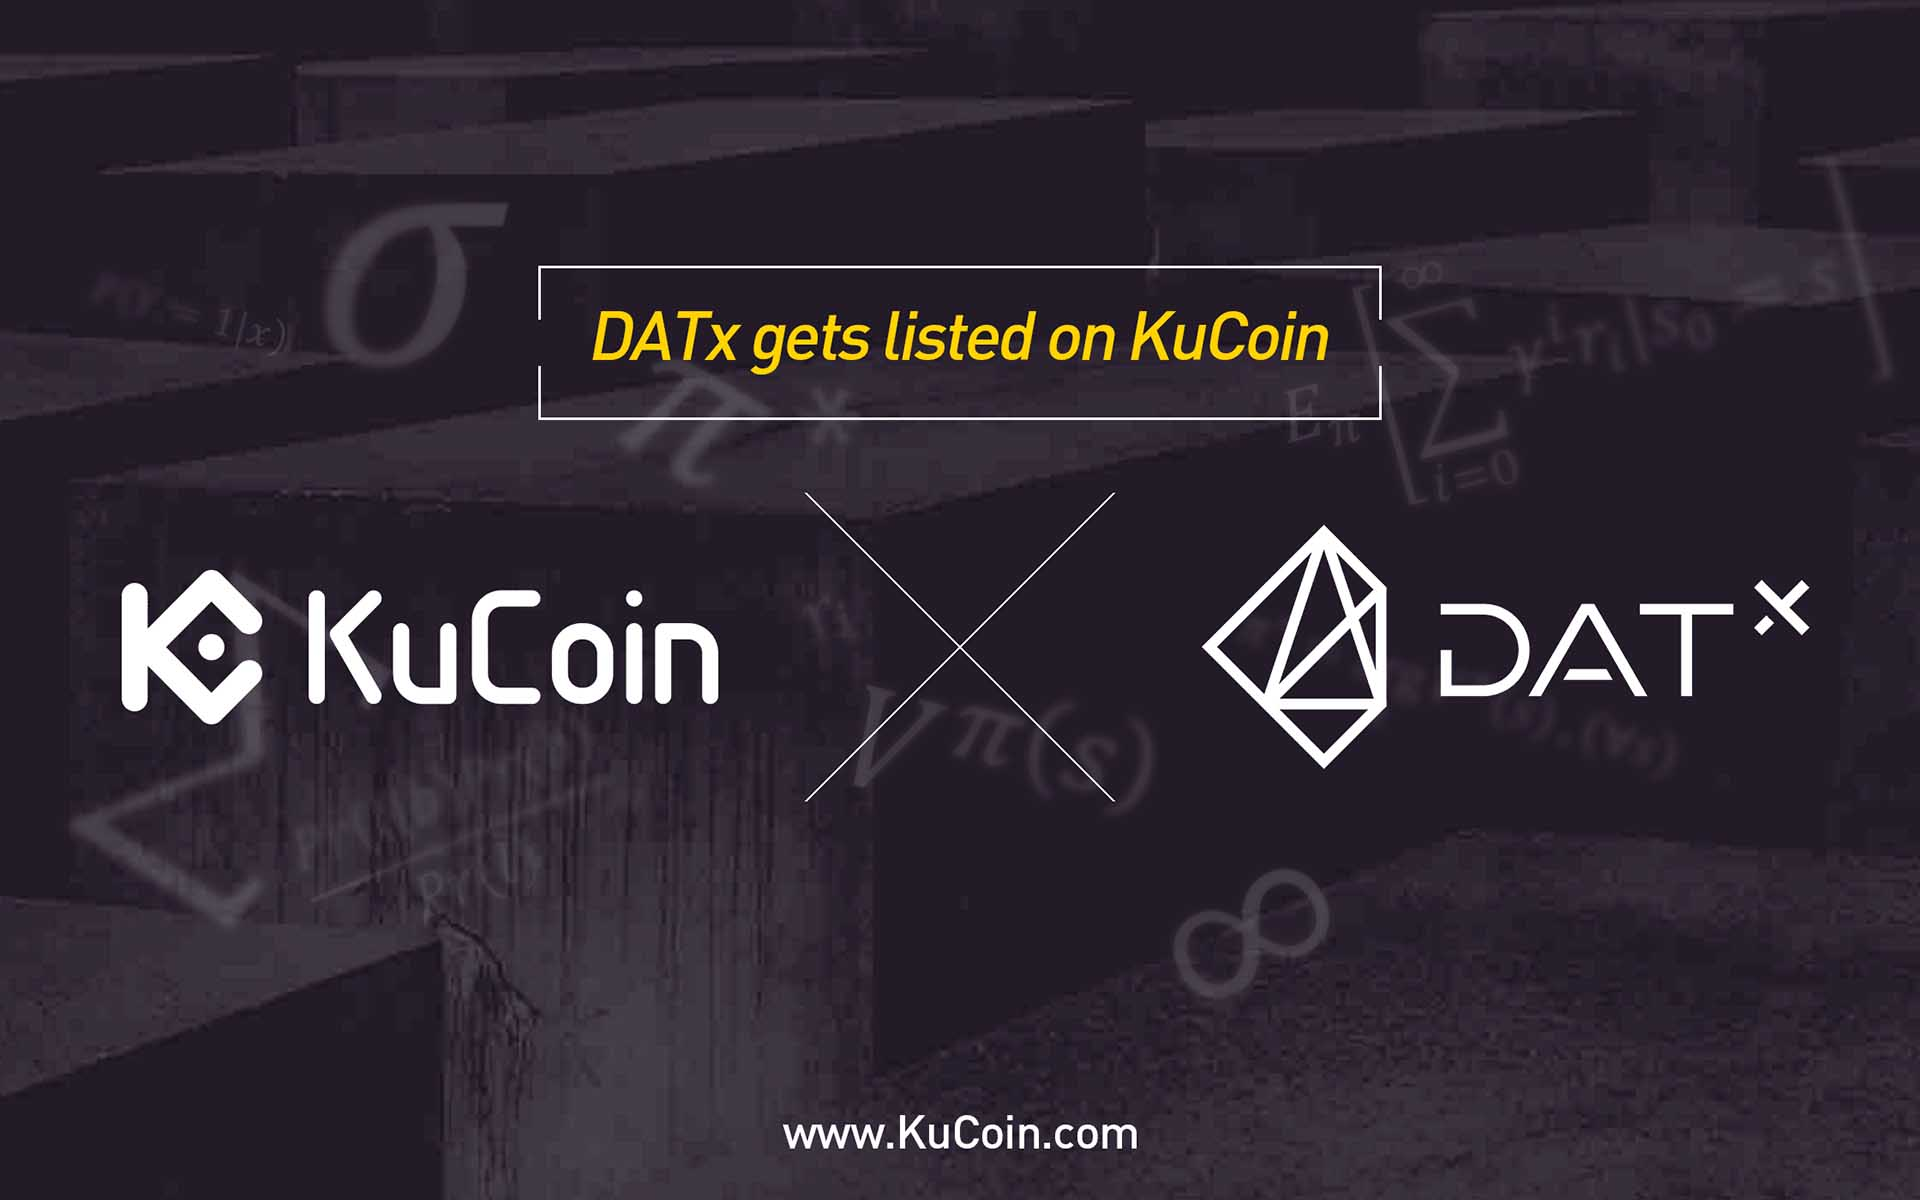 DATx (DATX) Gets Listed On KuCoin